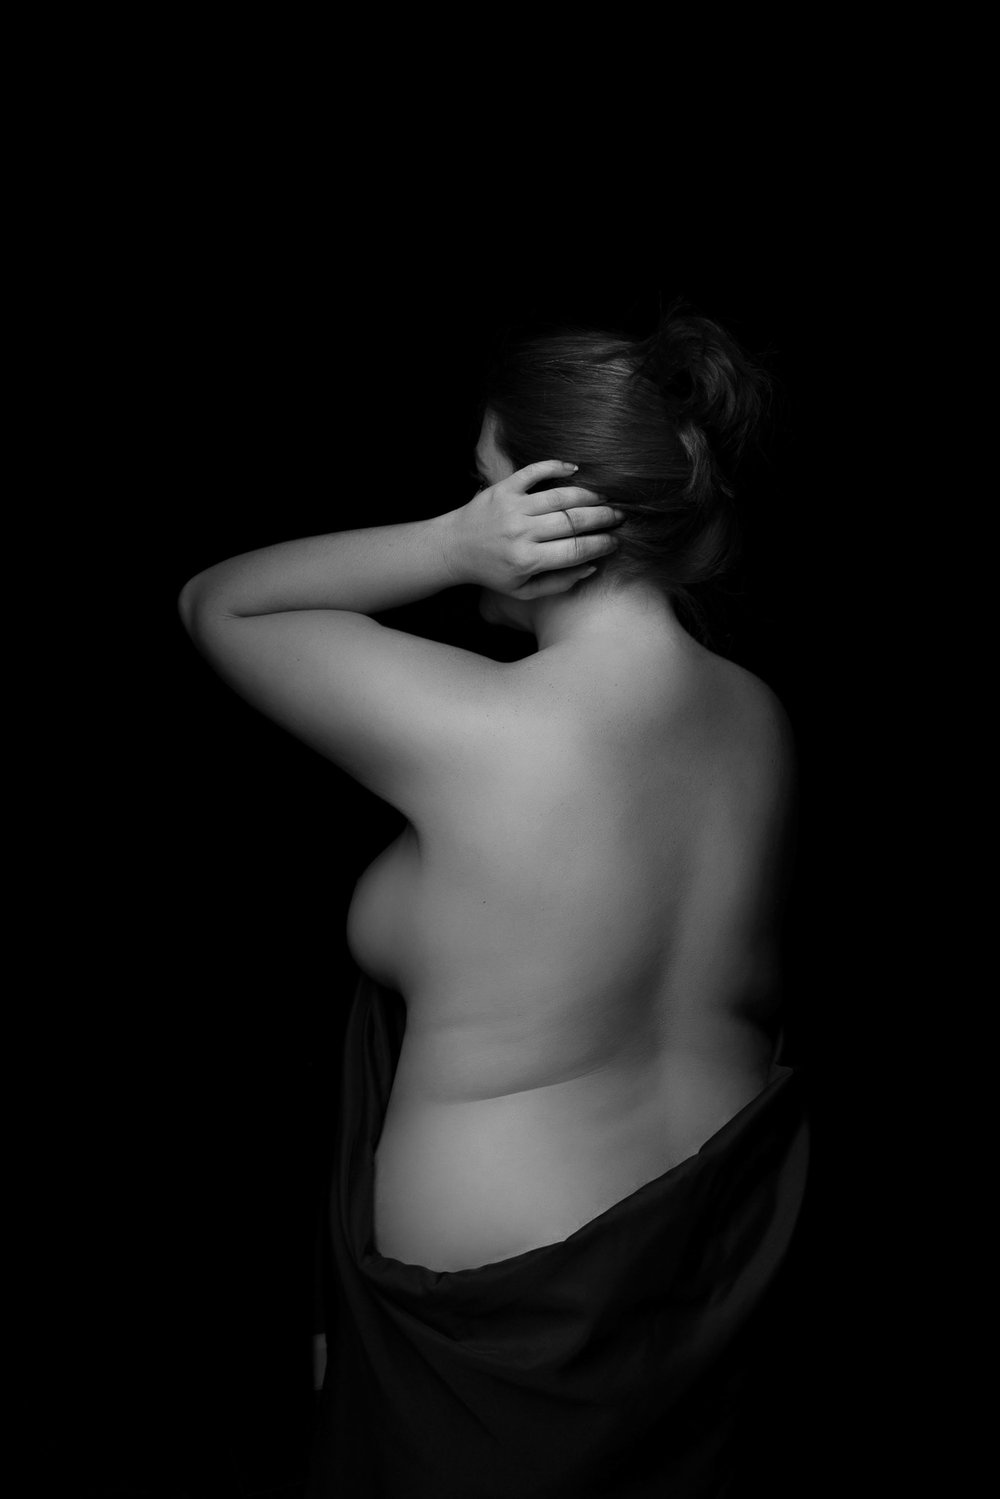 black and white bodyscape photo of curvy woman